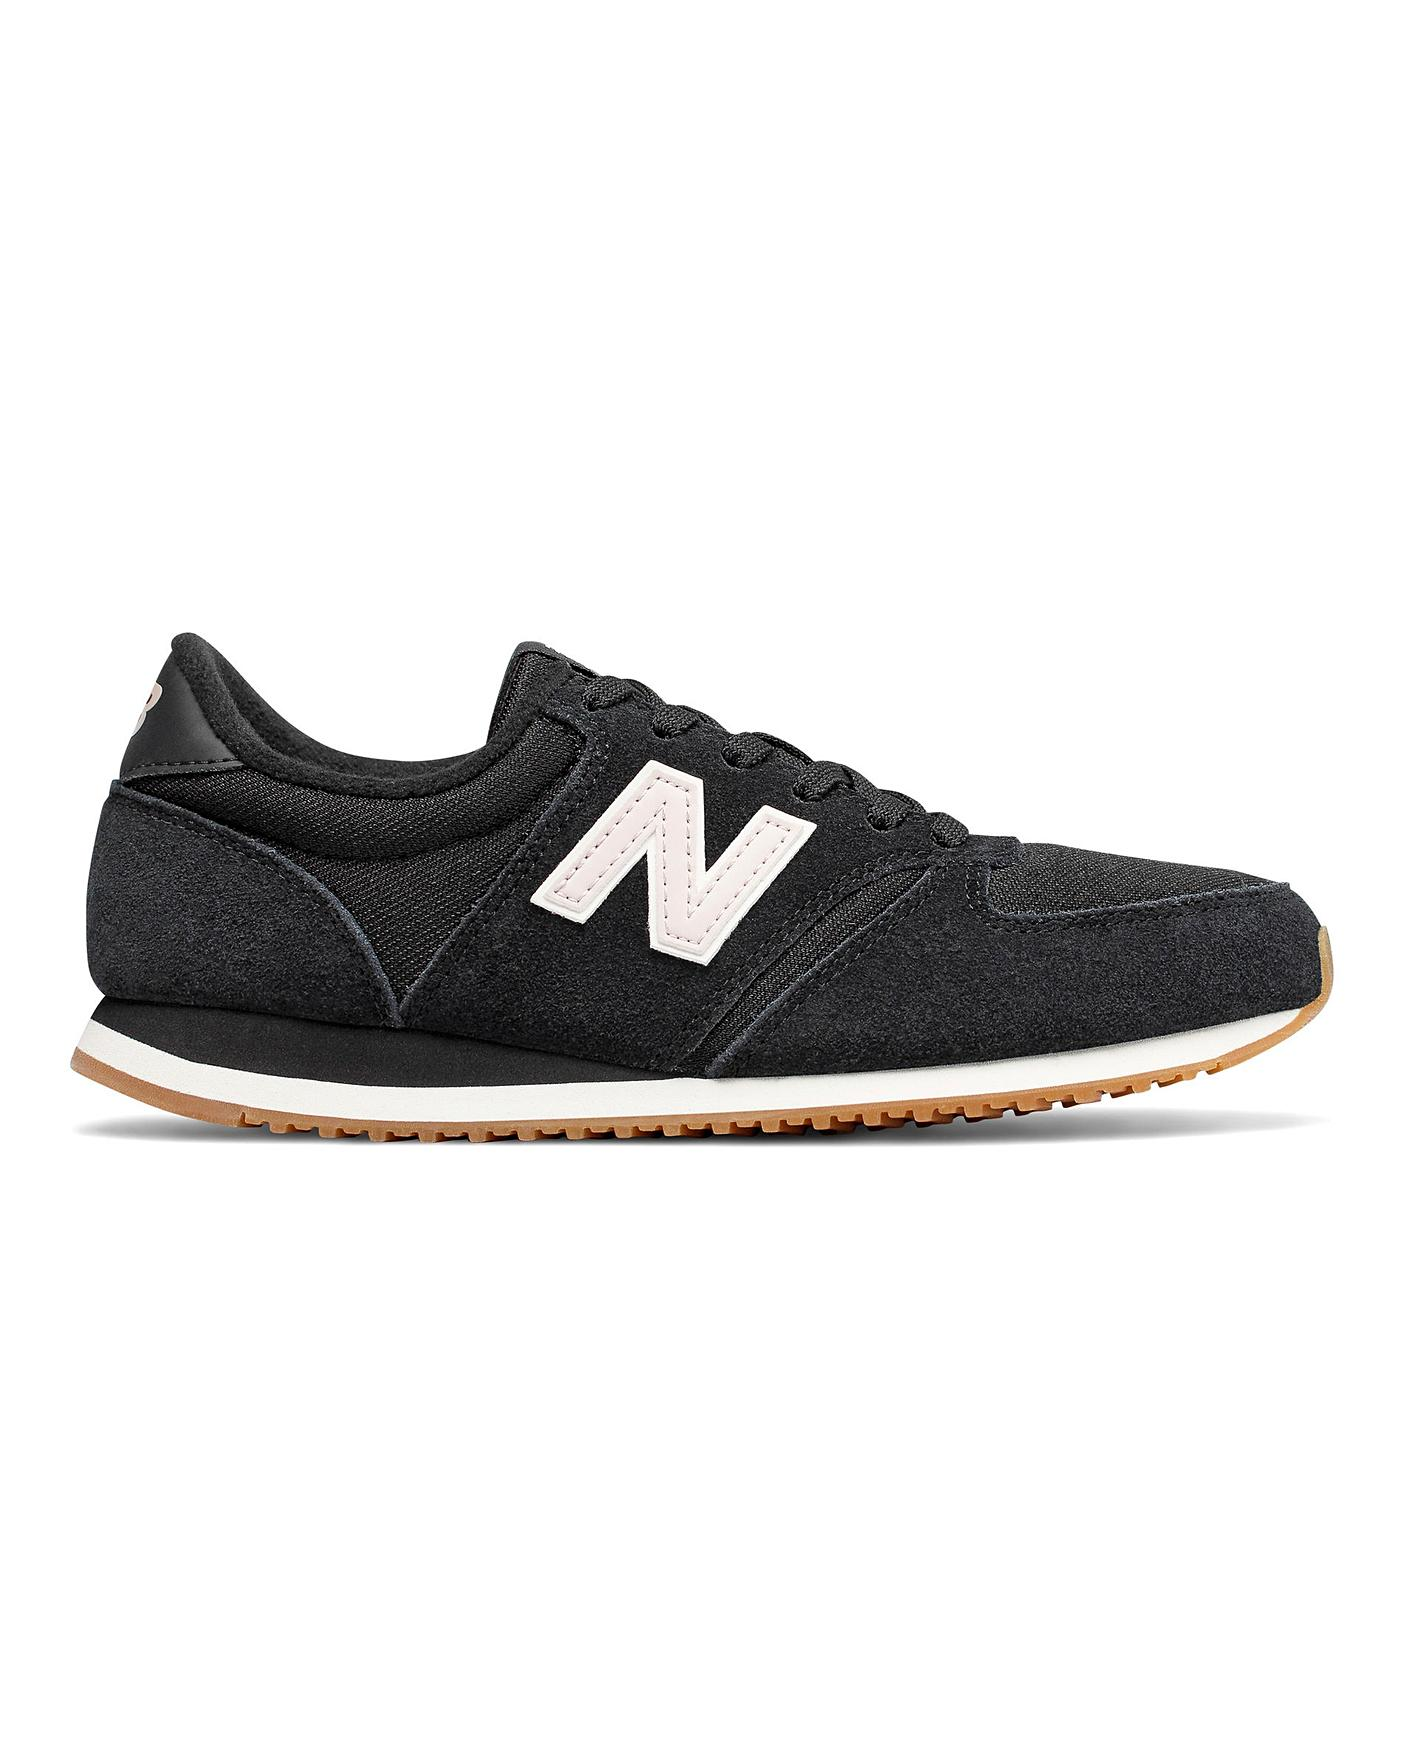 New Balance 420 Trainers | Oxendales